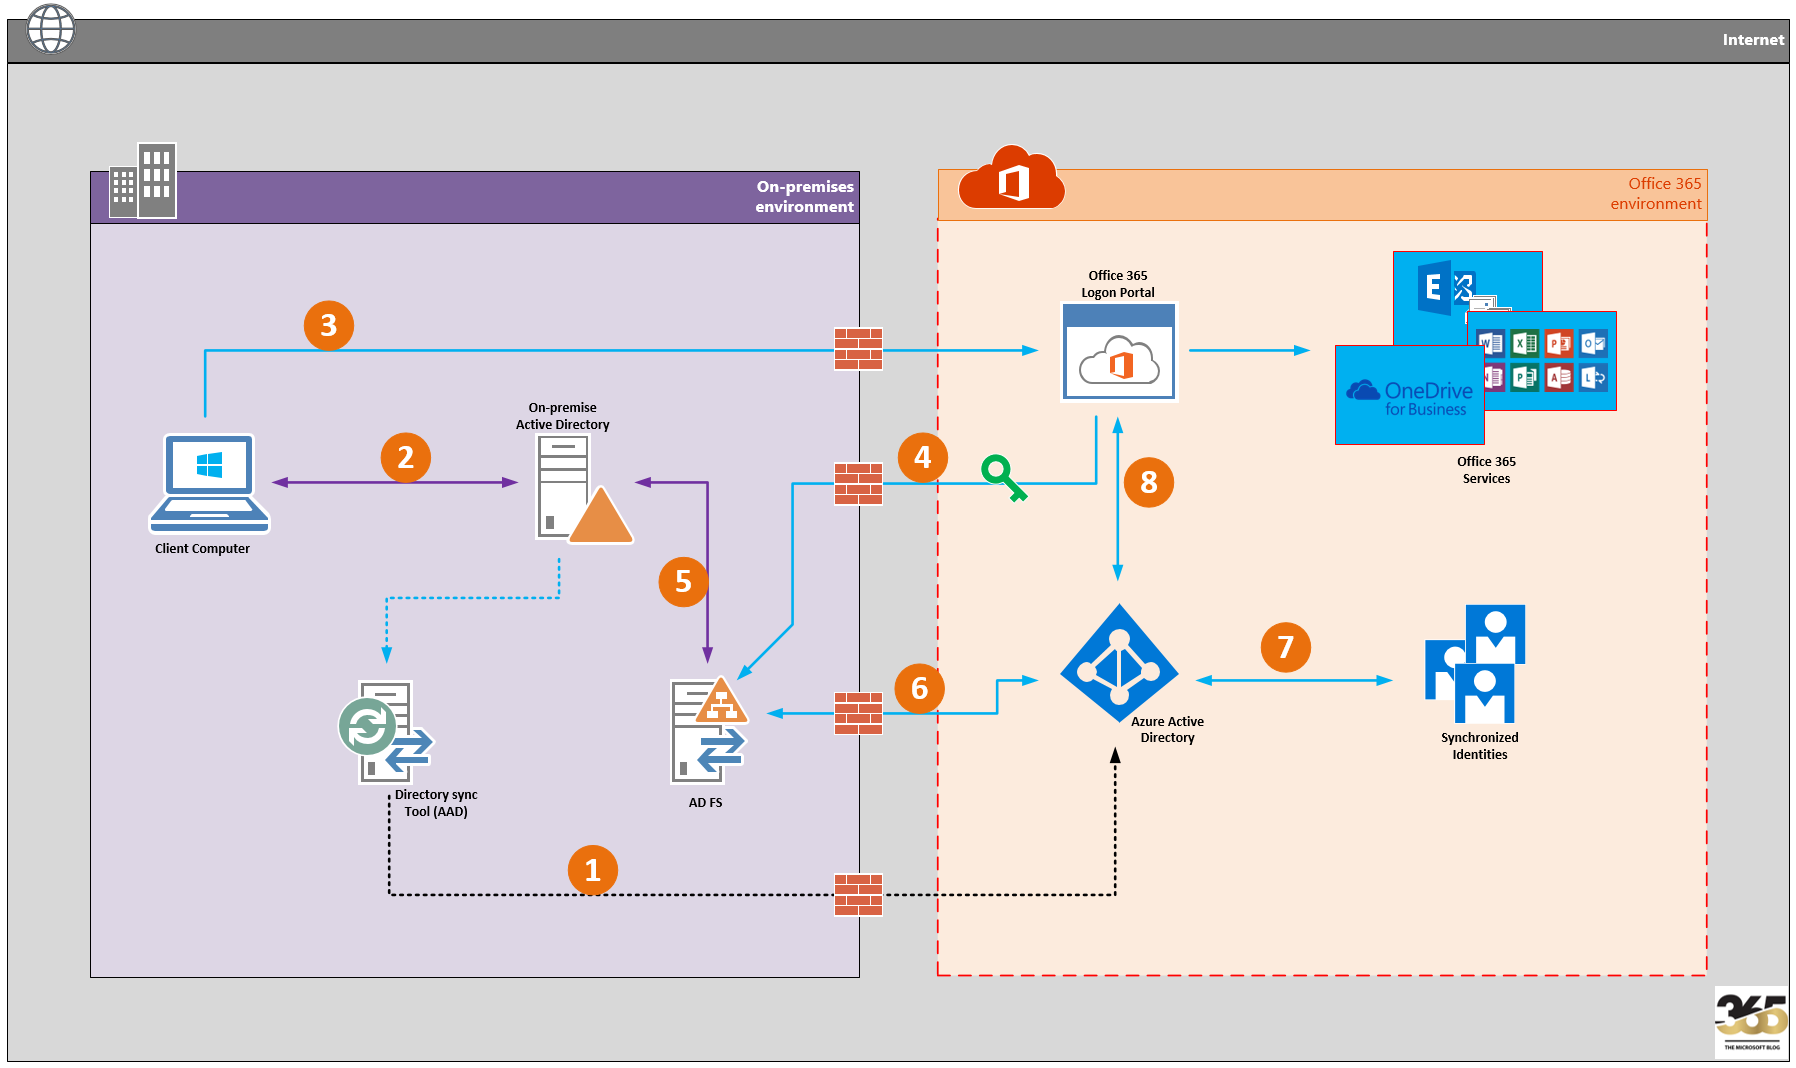 Cloud Identity - Step by step with Office 365 | MSB365